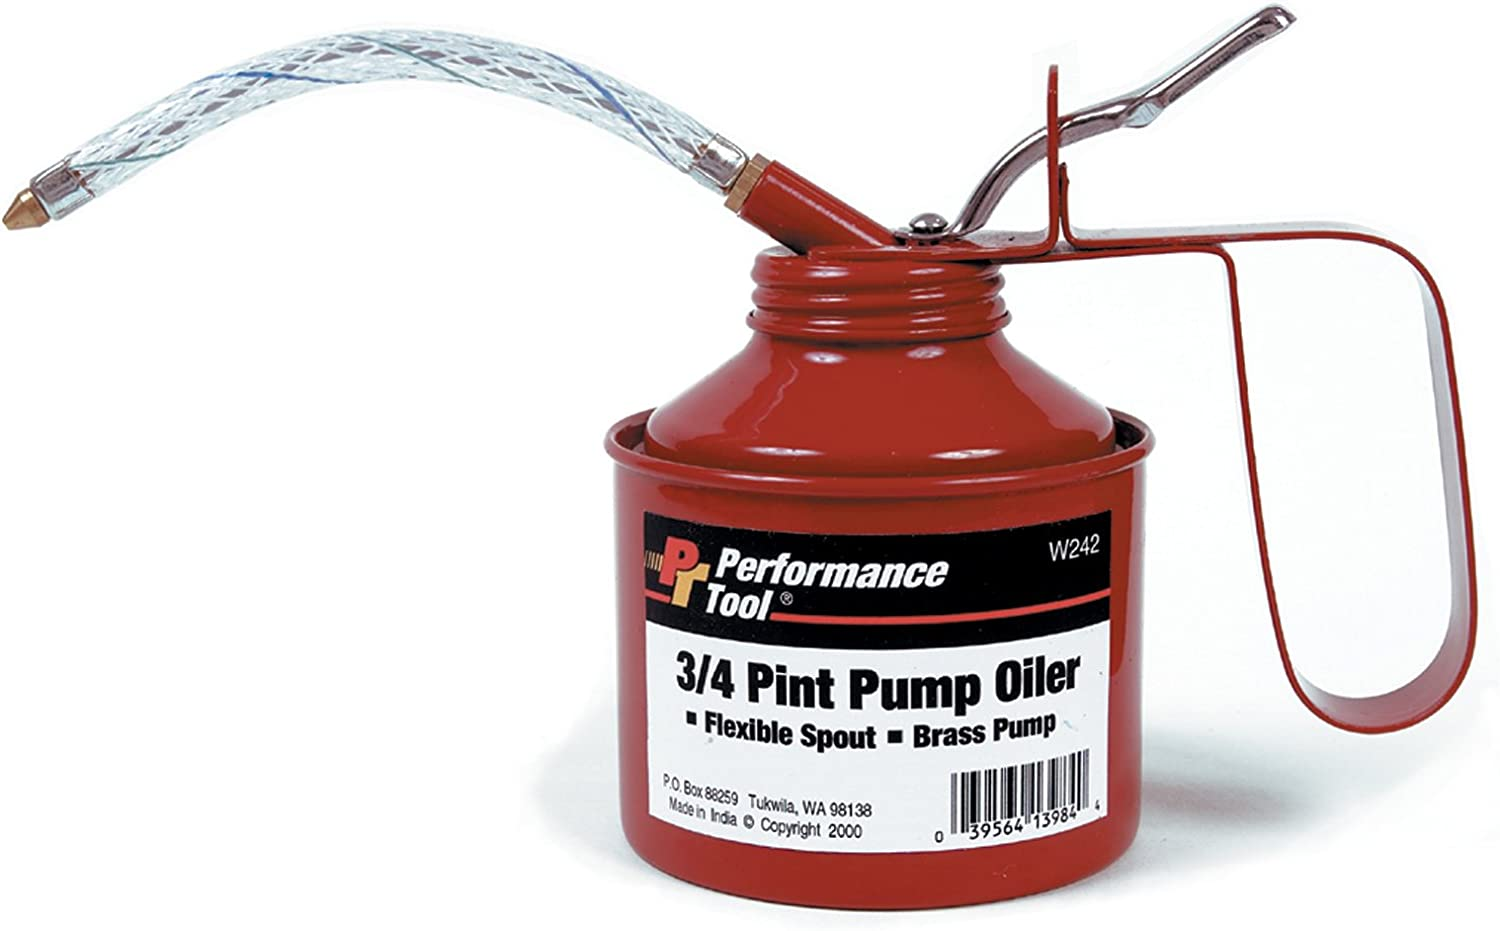 OFFer Performance Very popular Tool W242 Red 3 Oiler Pint Pump 4